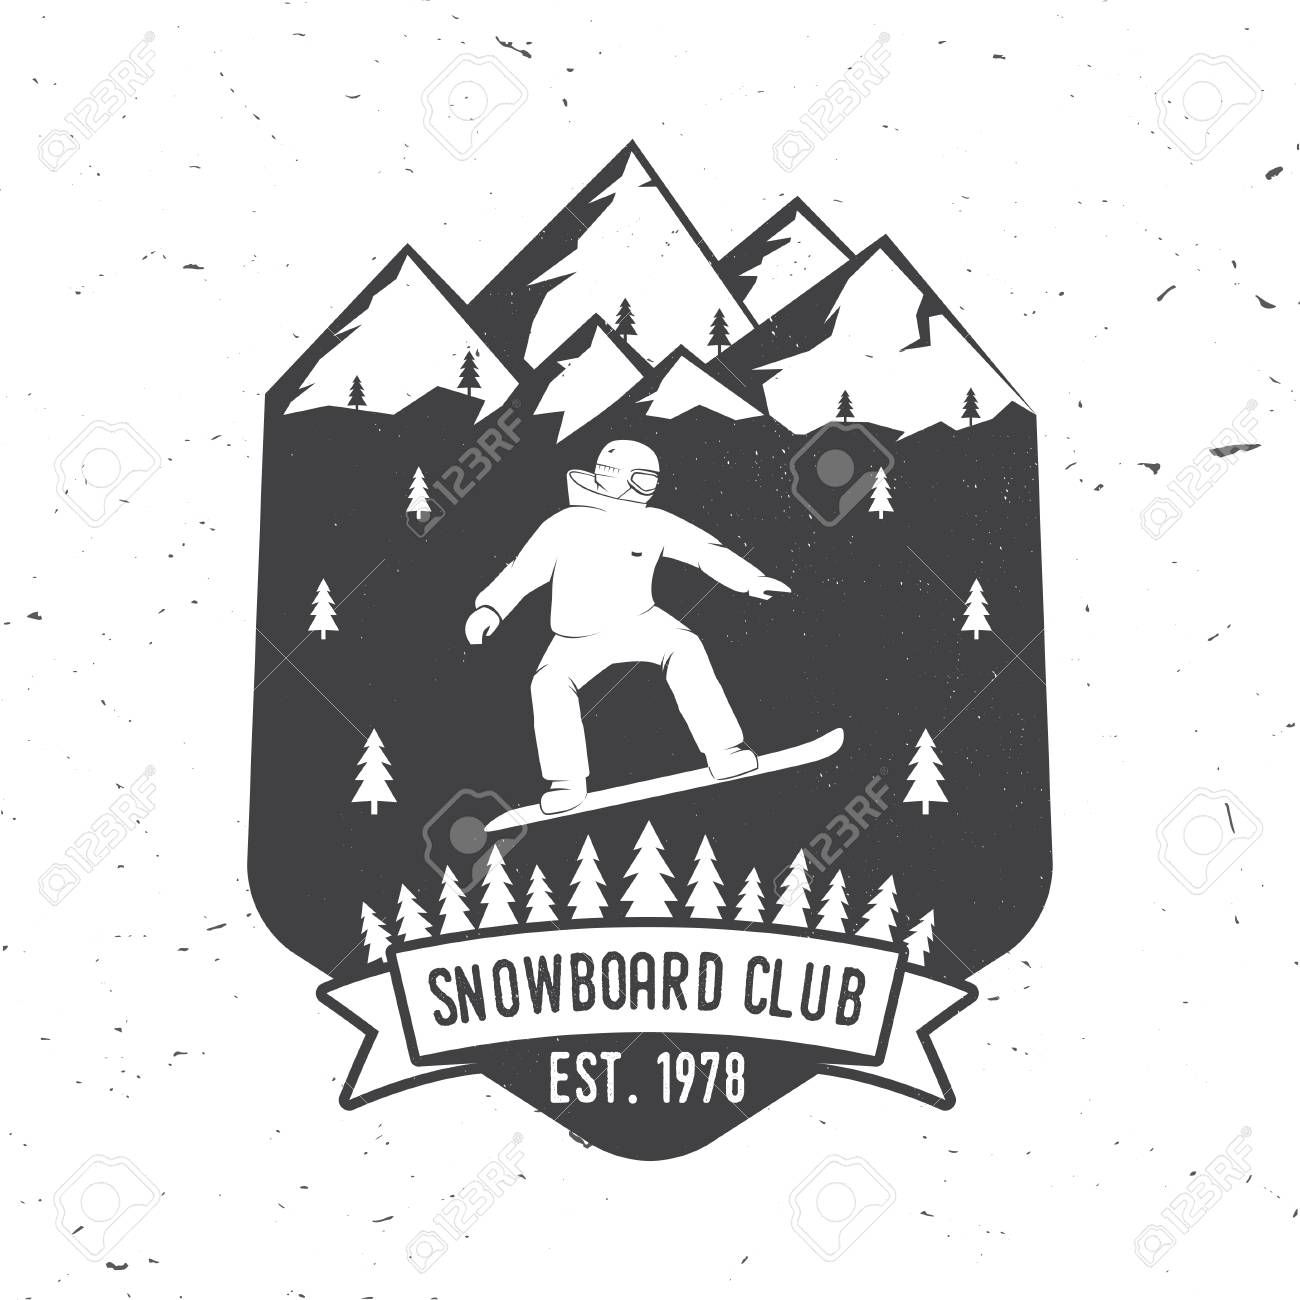 Snowboard Club Vector Illustration Concept For Shirt Or Logo Print Stamp Or Tee Spon Illustration Concept Vector Snowboard Club